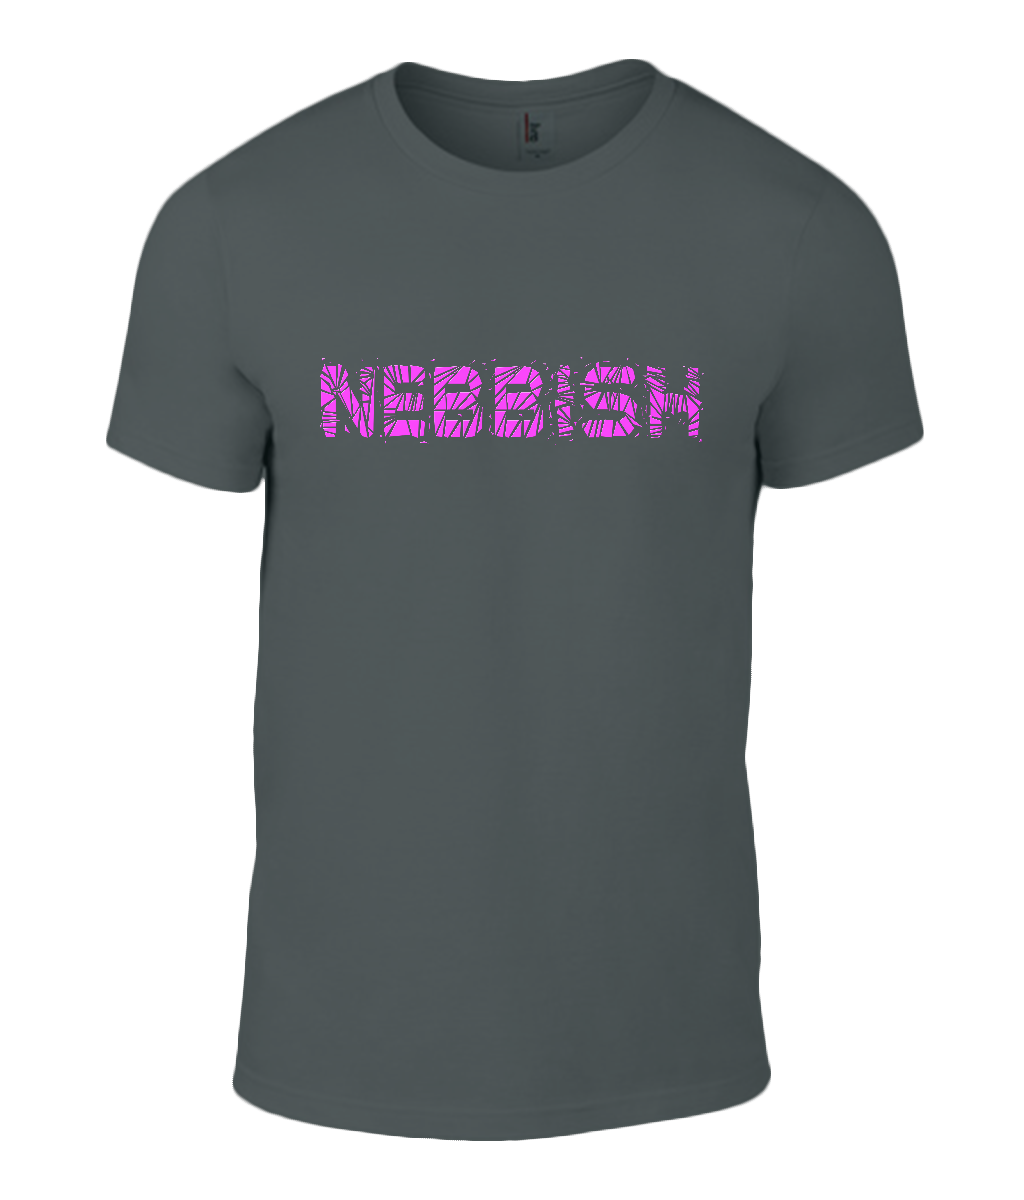 Round Neck T-Shirt - Nebbish - Lokshen Pudding UK - Black